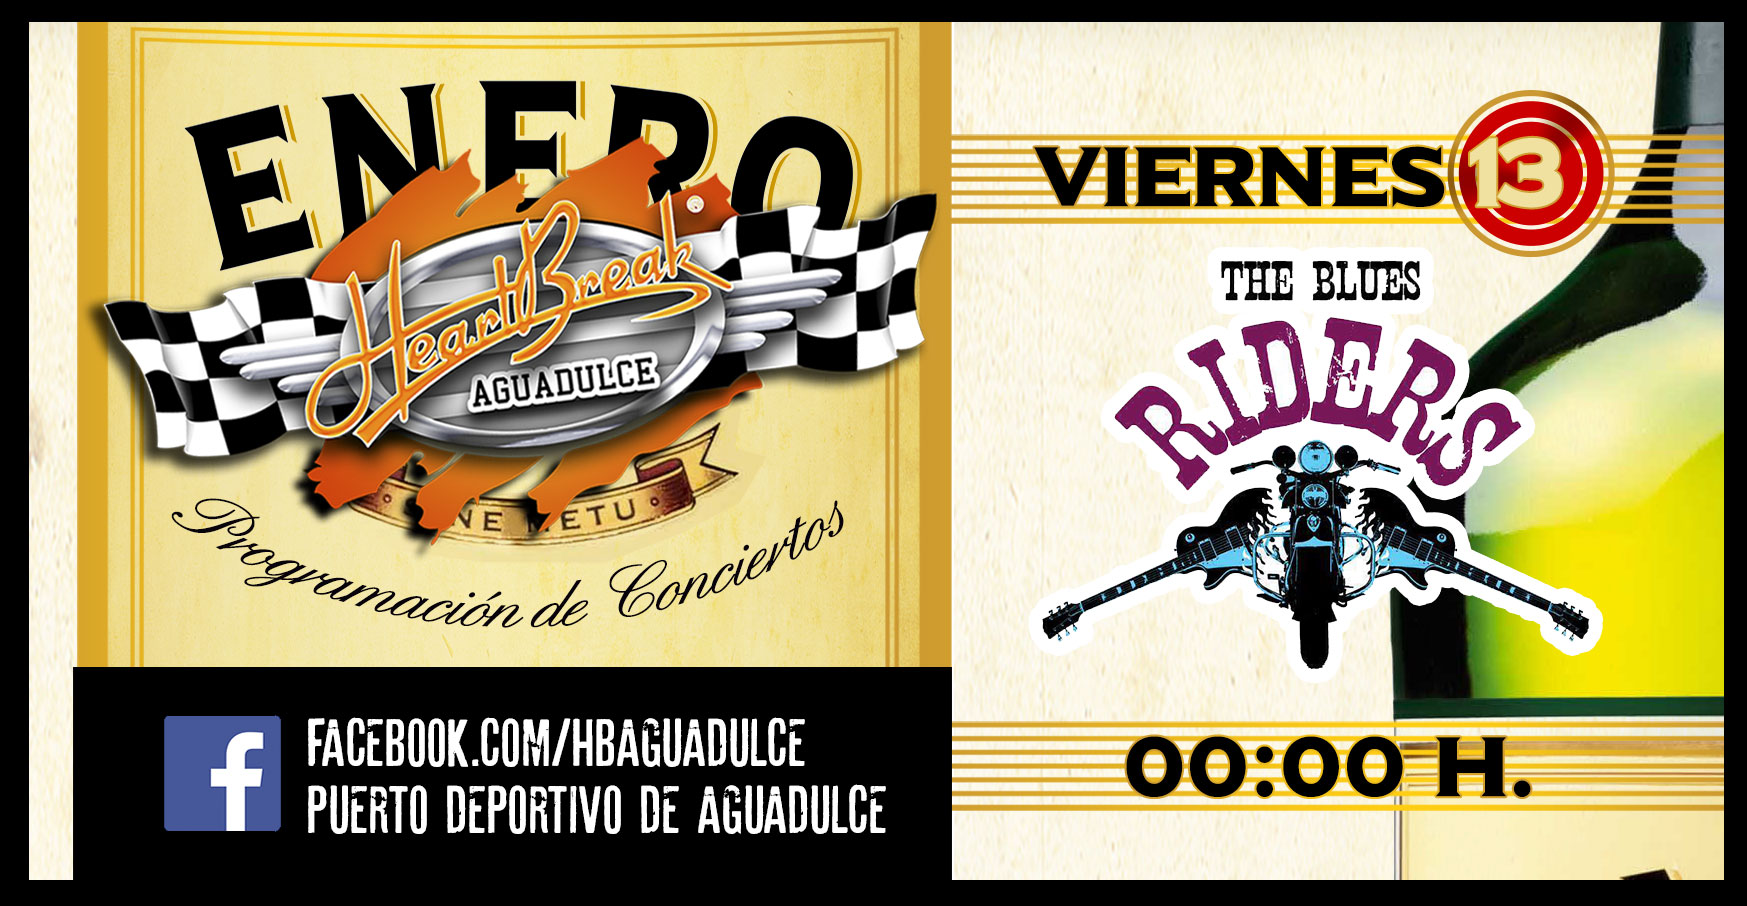 Concierto de The blues riders